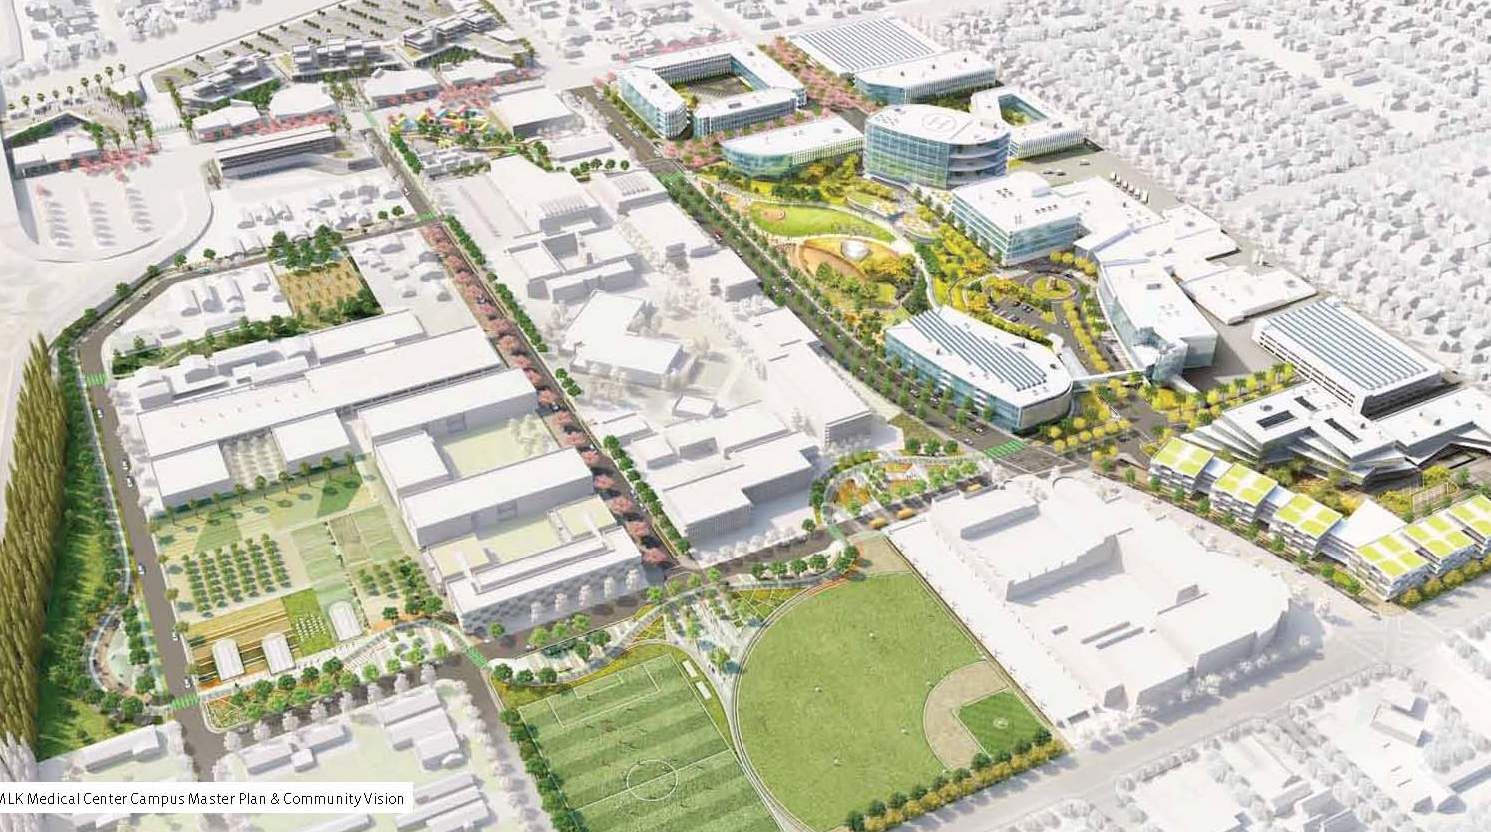 Planning For The Future At Mlk And Harbor Ucla Hospitals